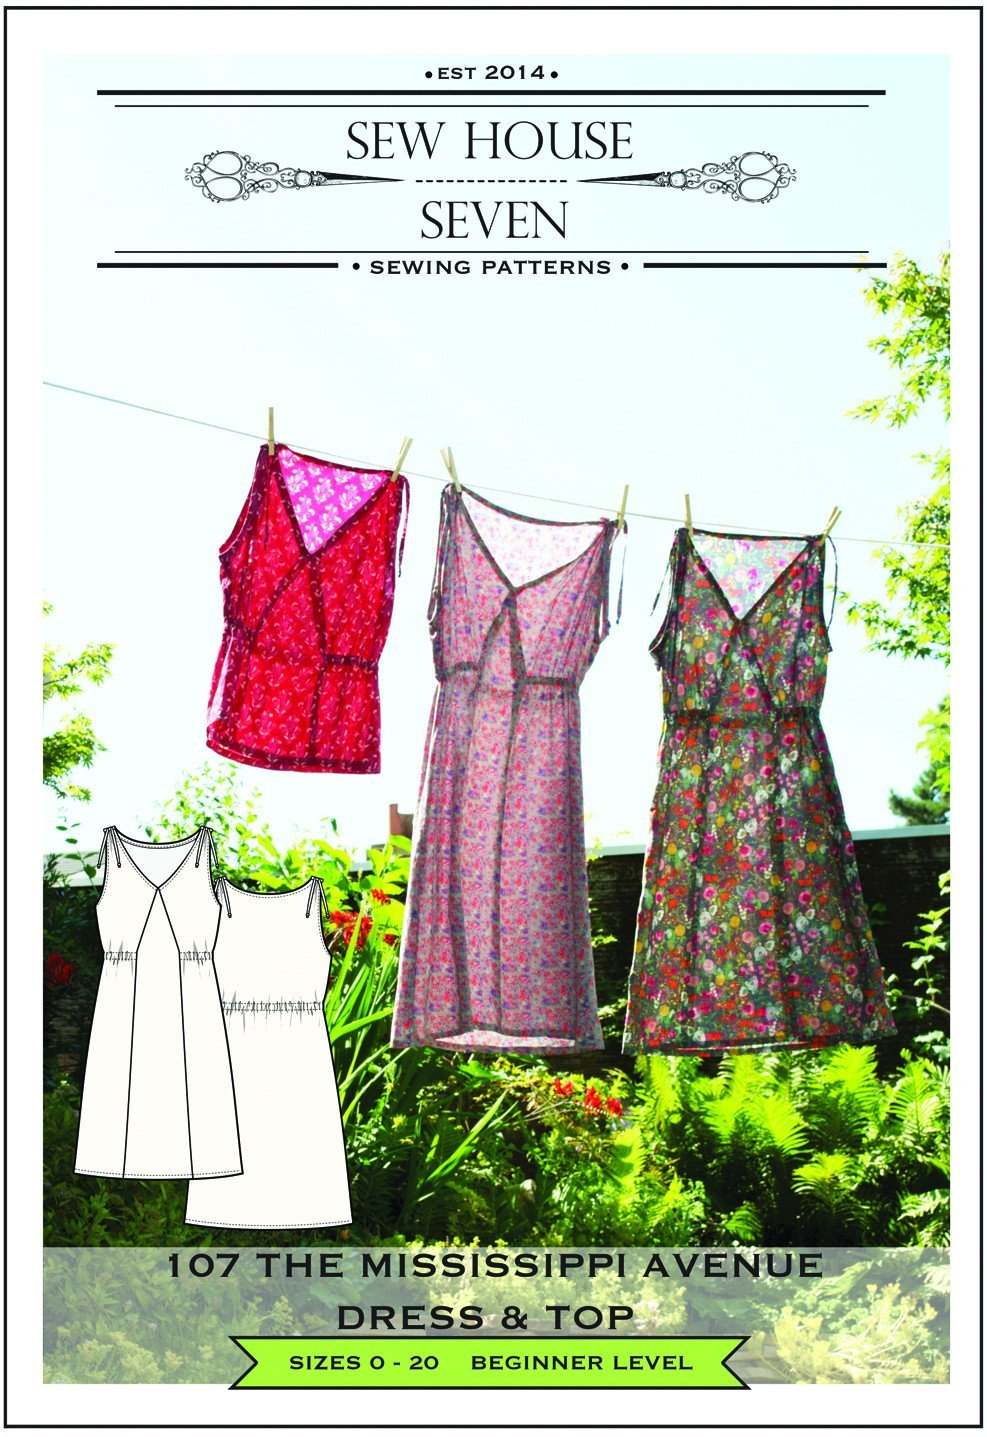 Sew House Seven - The Mississippi Avenue Dress and Top